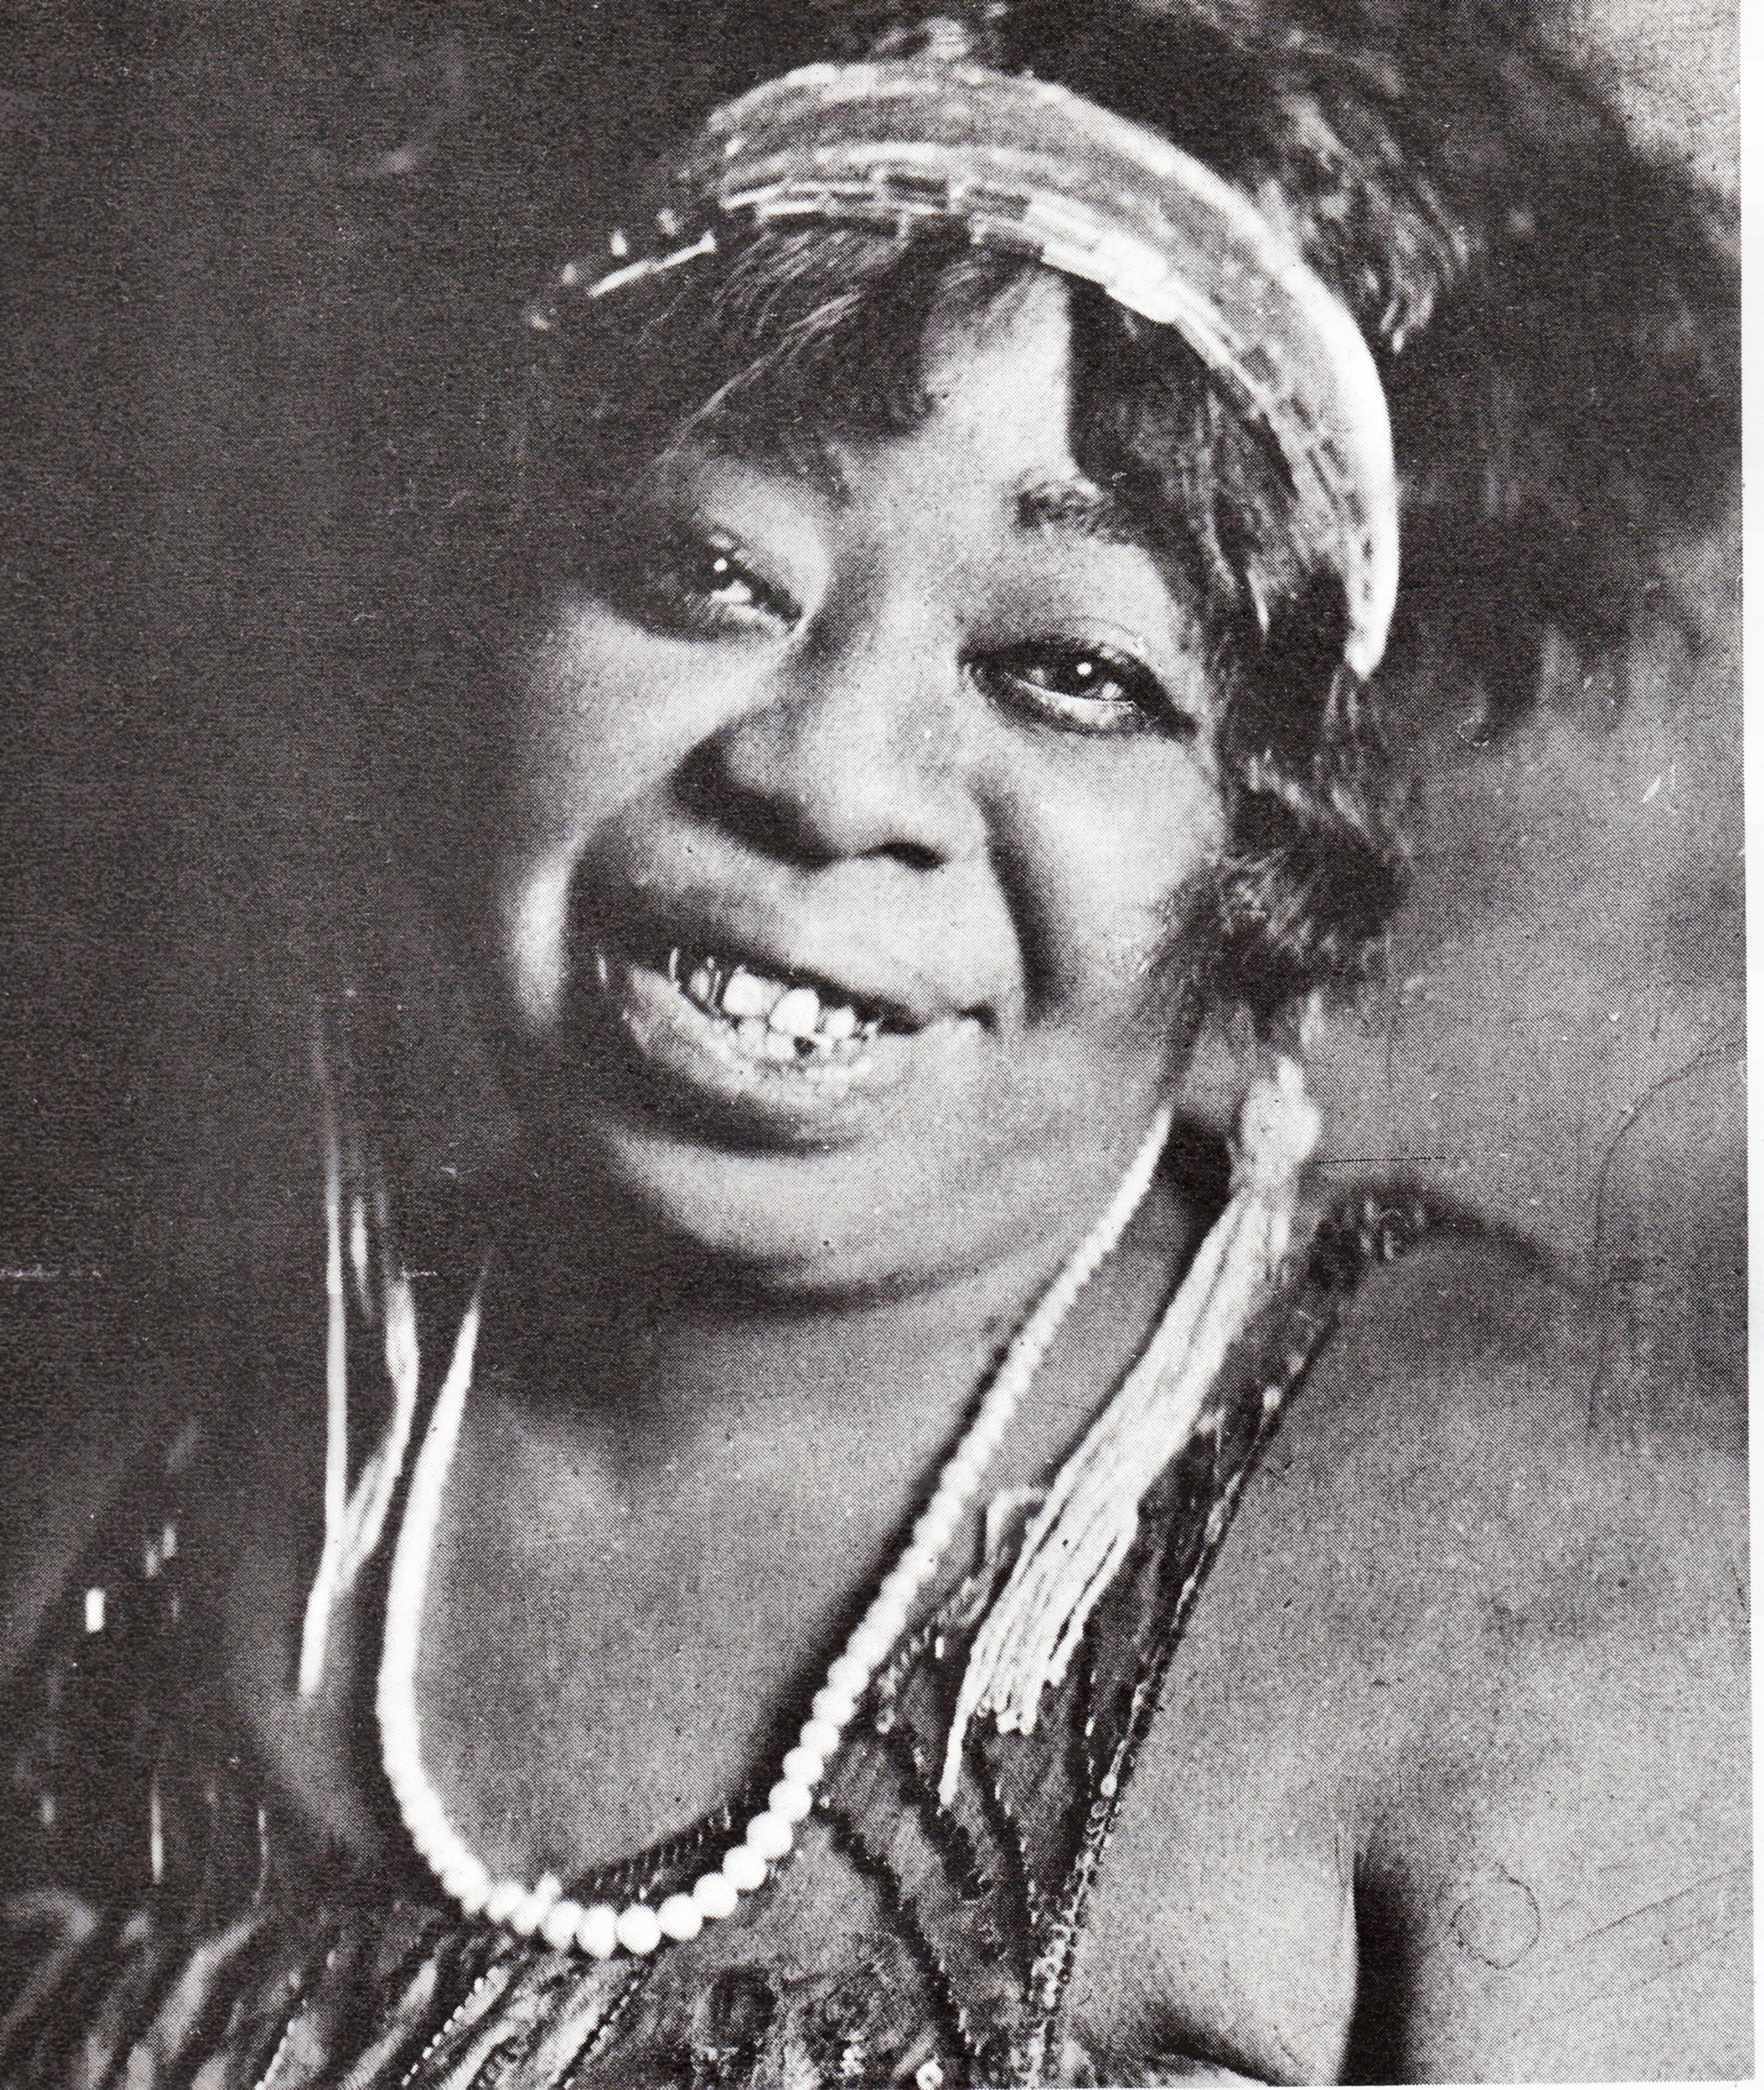 bessie smith Find bessie smith biography and history on allmusic - the first major blues and jazz singer on record.